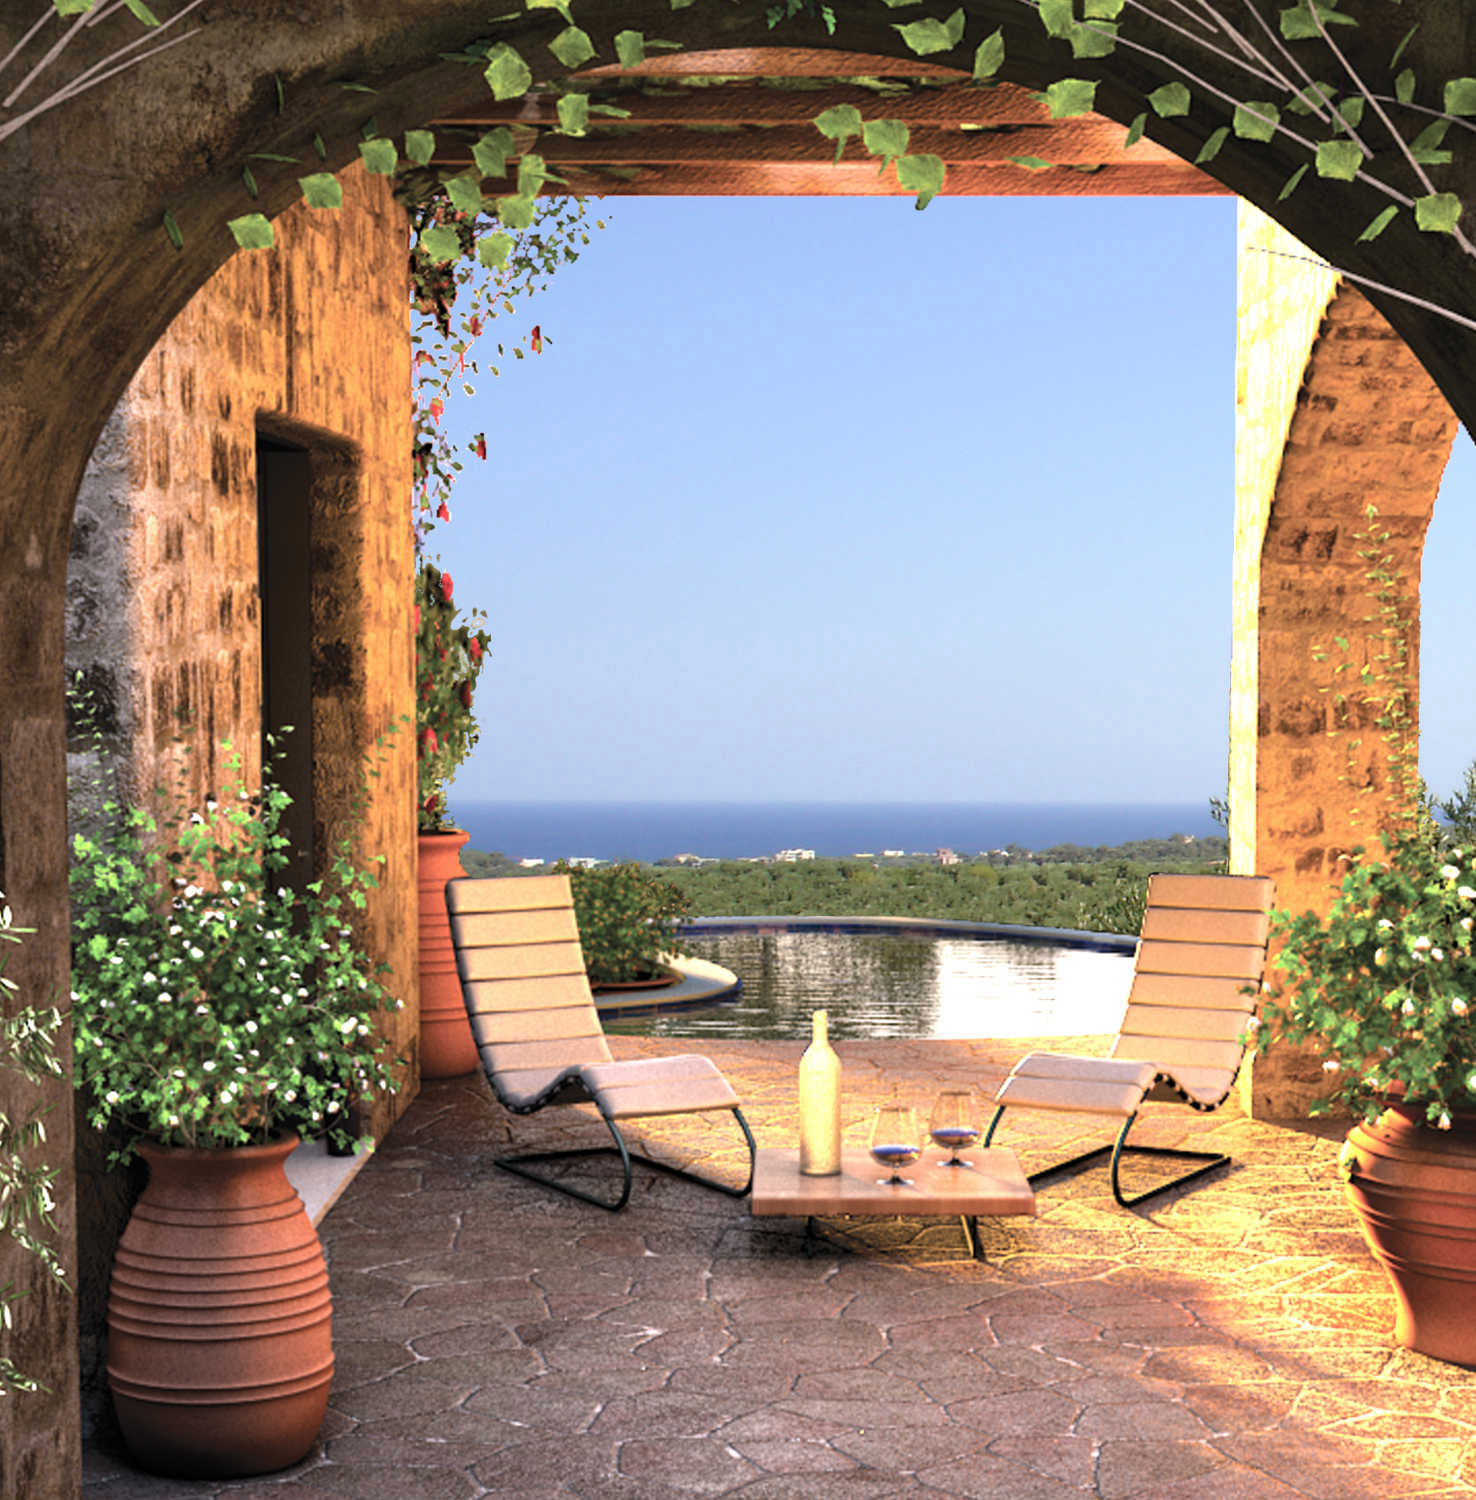 Stone Arch on Terrace